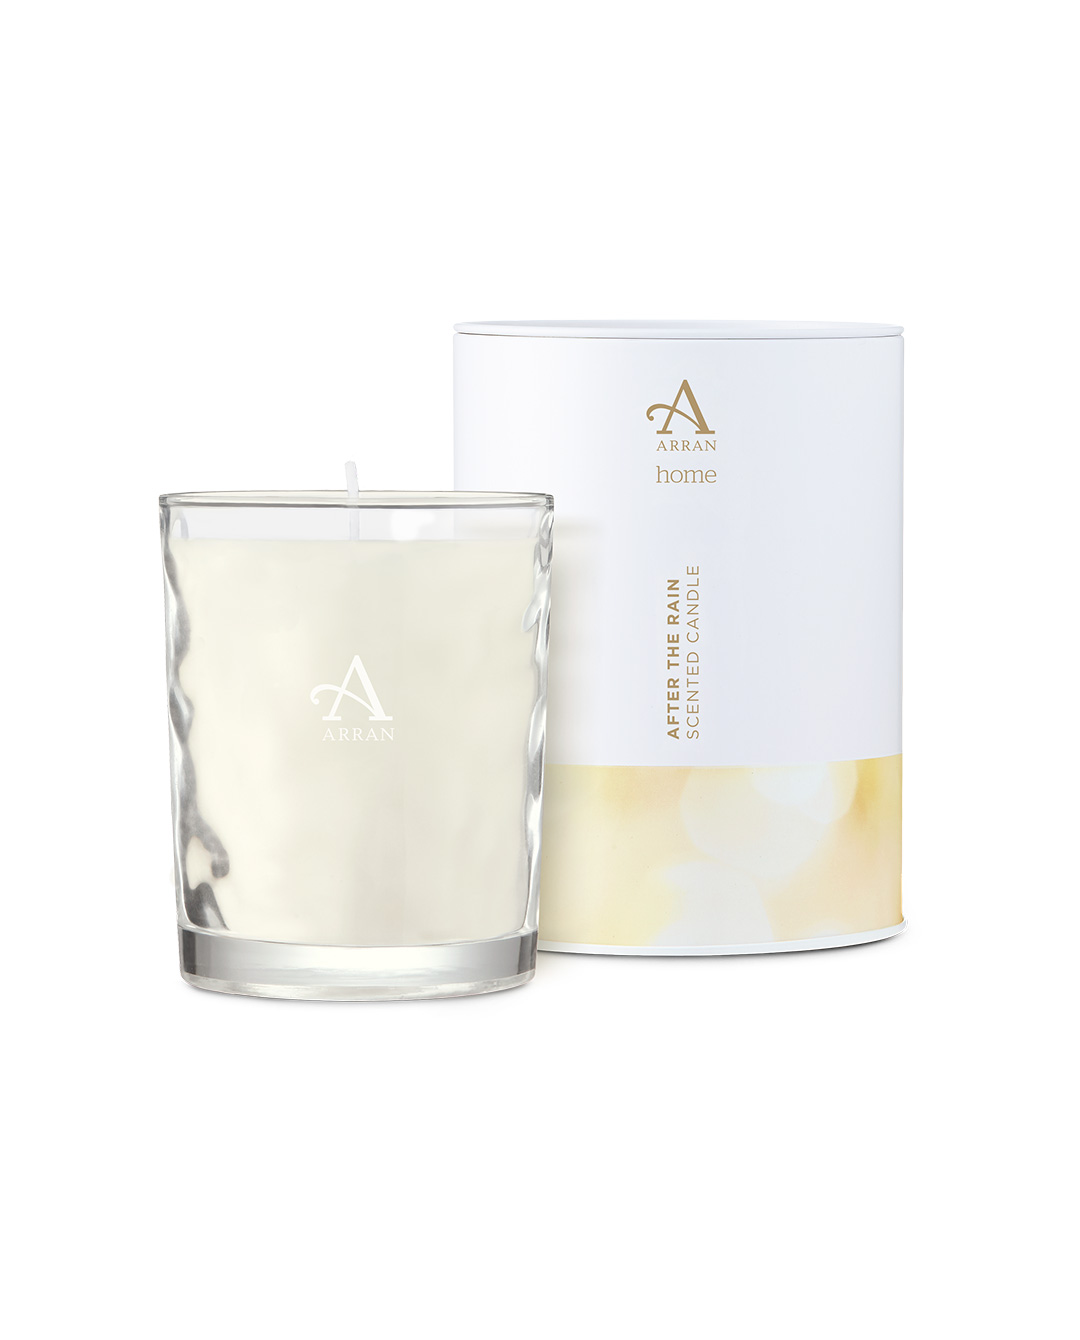 Arran After the Rain Candle 350g